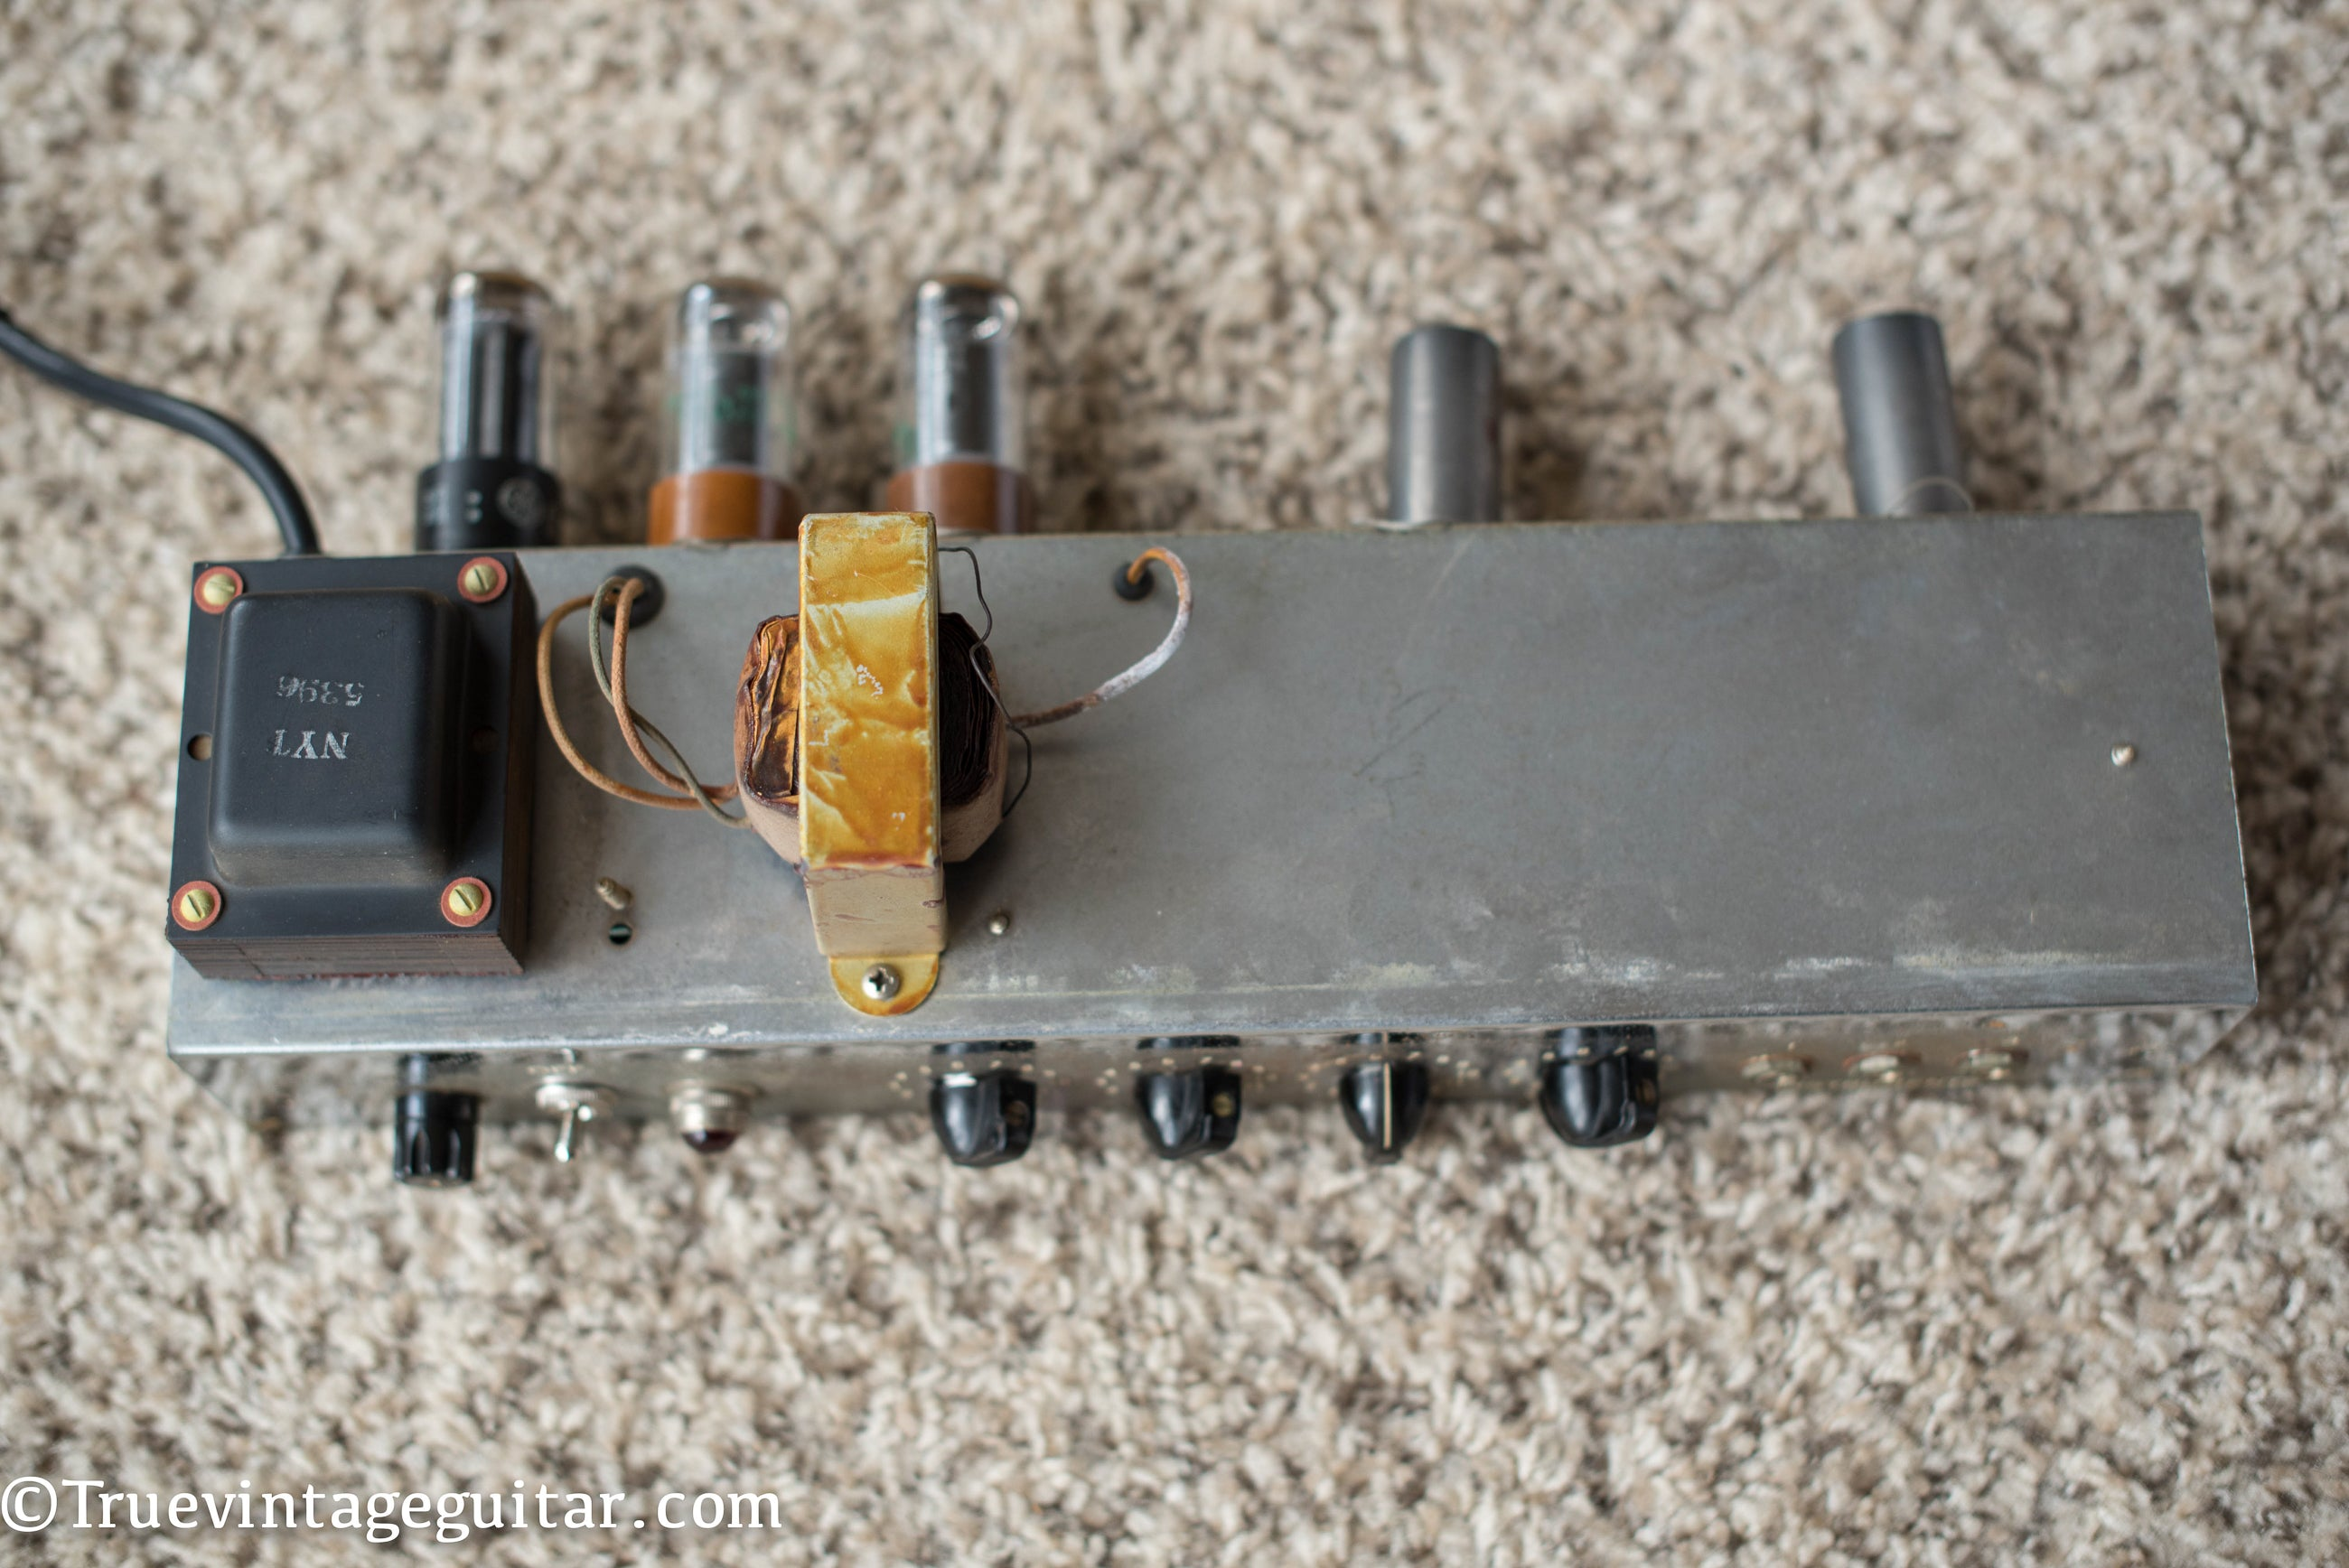 Output transformer, power transformer, chassis, 1957 Fender Vibrolux amp